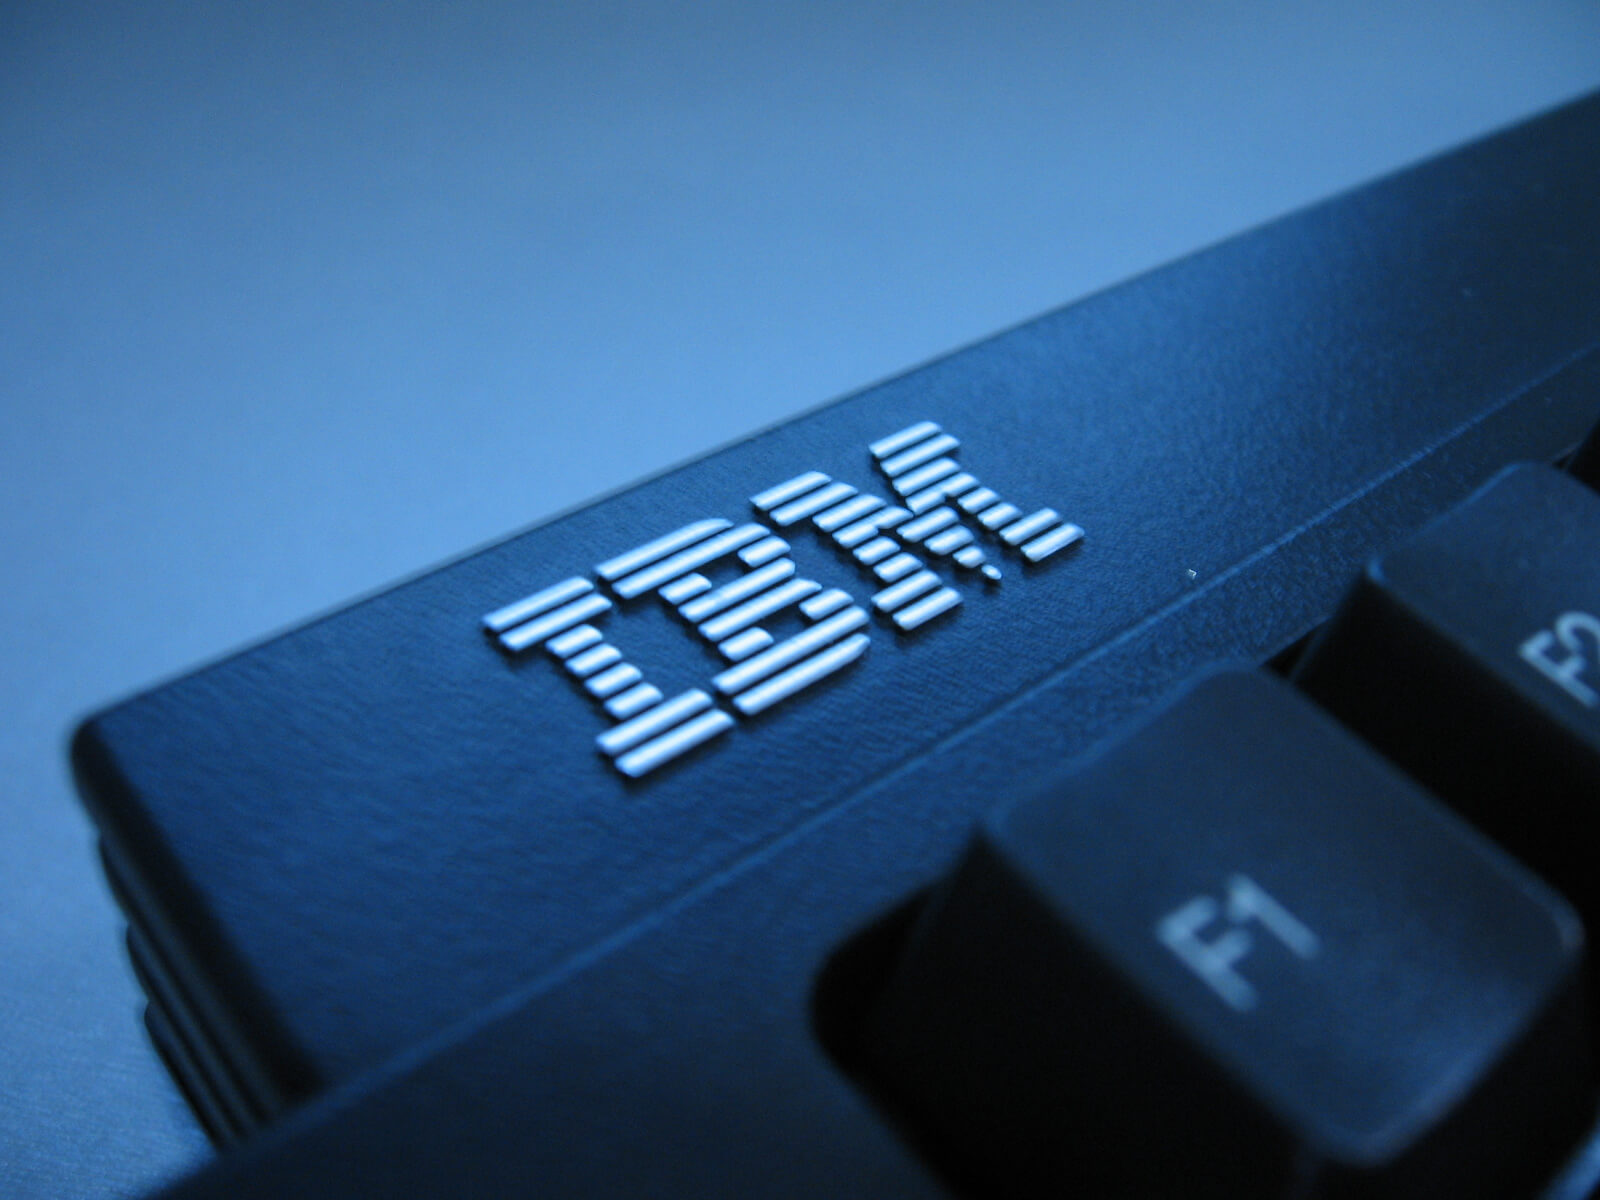 IBM Research Distributed Deep Learning code breaks accuracy record for image recognition